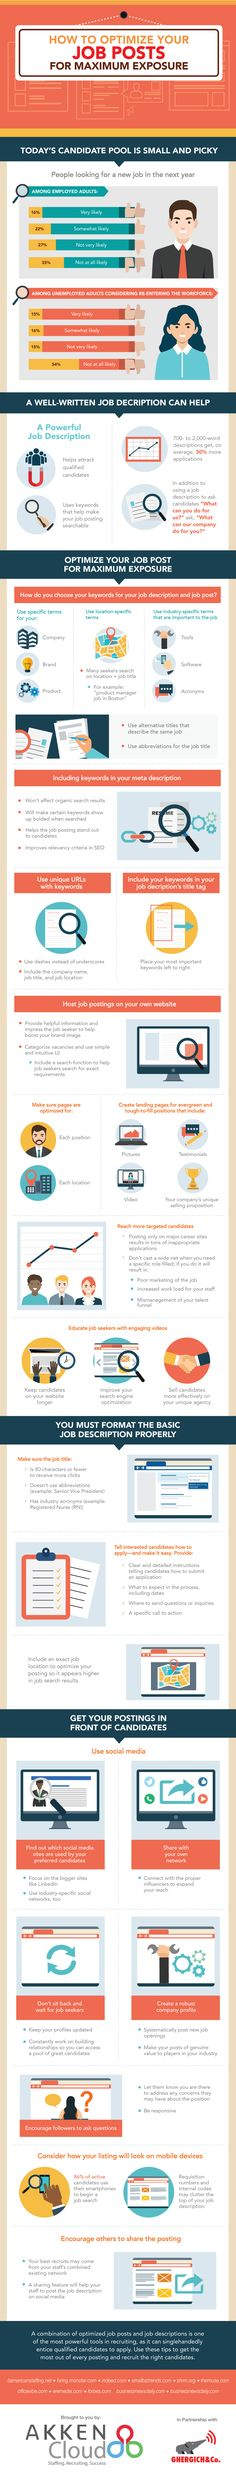 [INFOGRAPHIC] How to Optimize Your Job Posts for Maximum Exposure